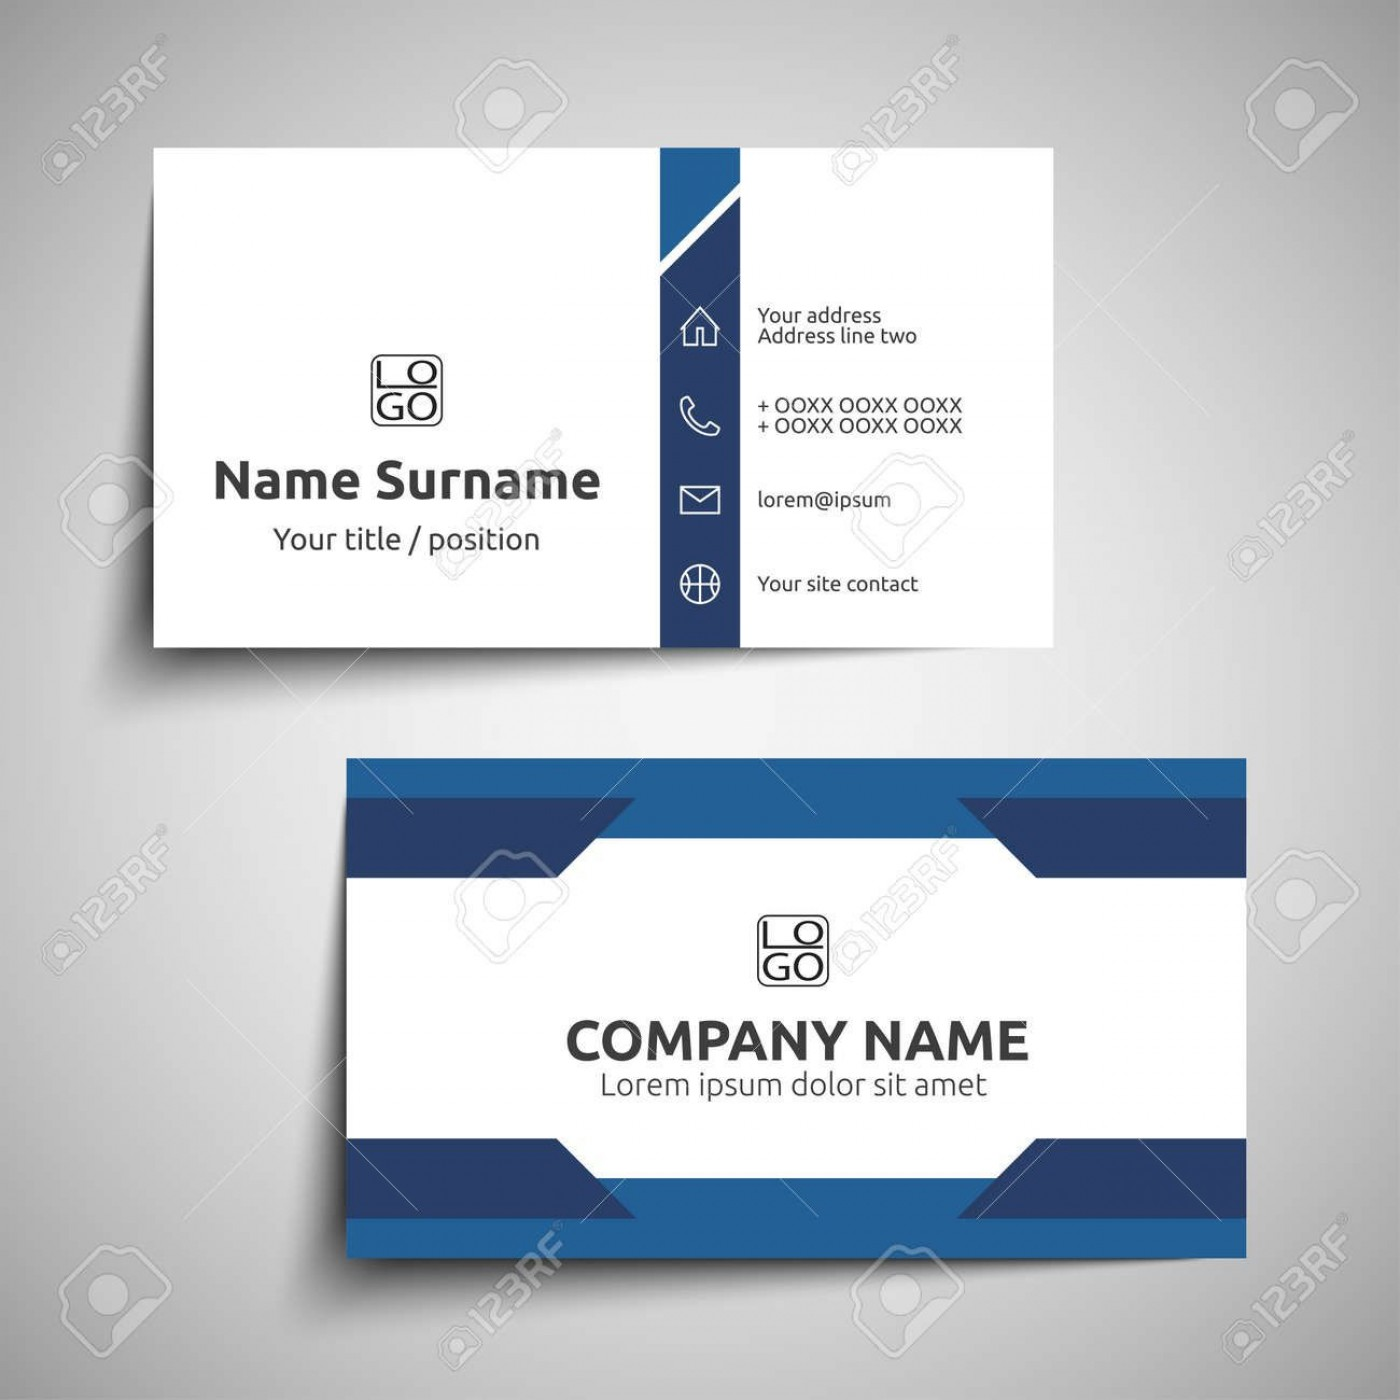 000 Excellent Simple Visiting Card Design Photo  Calling Busines Template Free In Photoshop1400